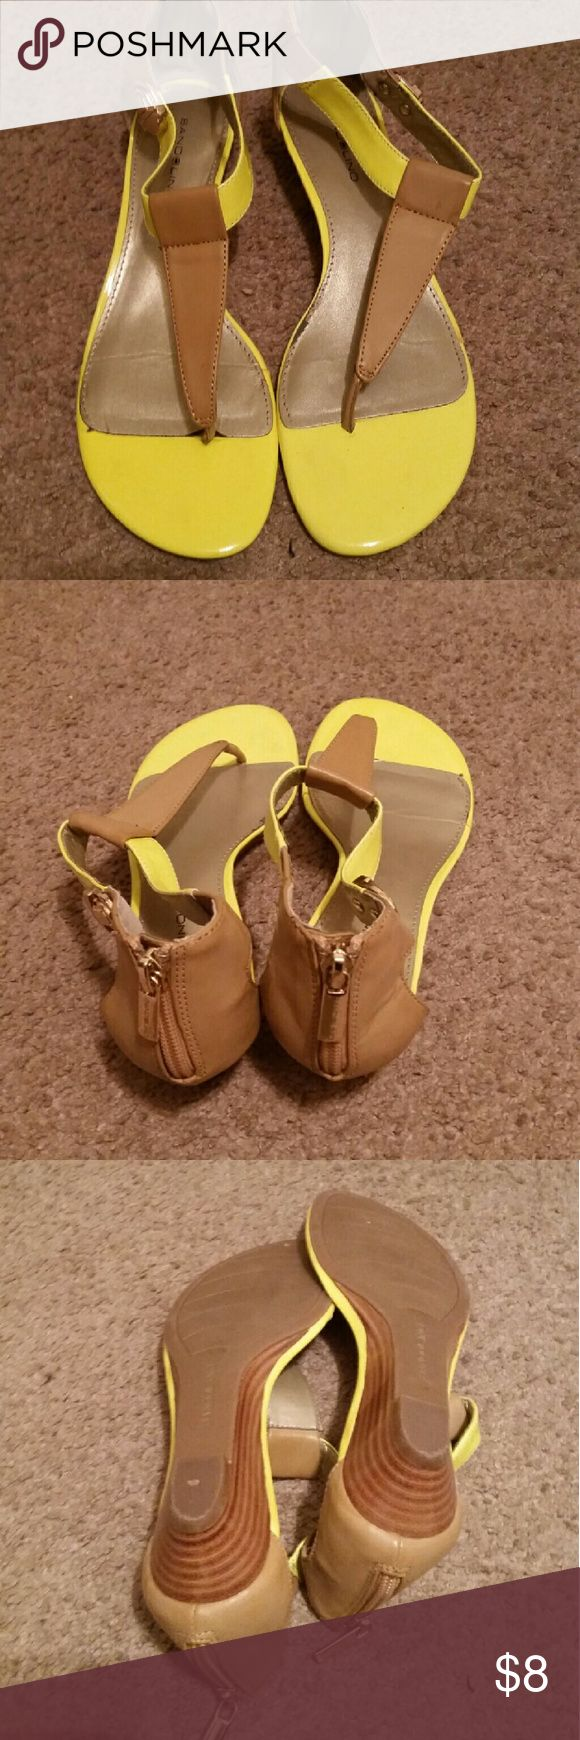 Bandolino yellow sandals size 7.5 m Great condition barely worn. Bandolino Shoes Sandals